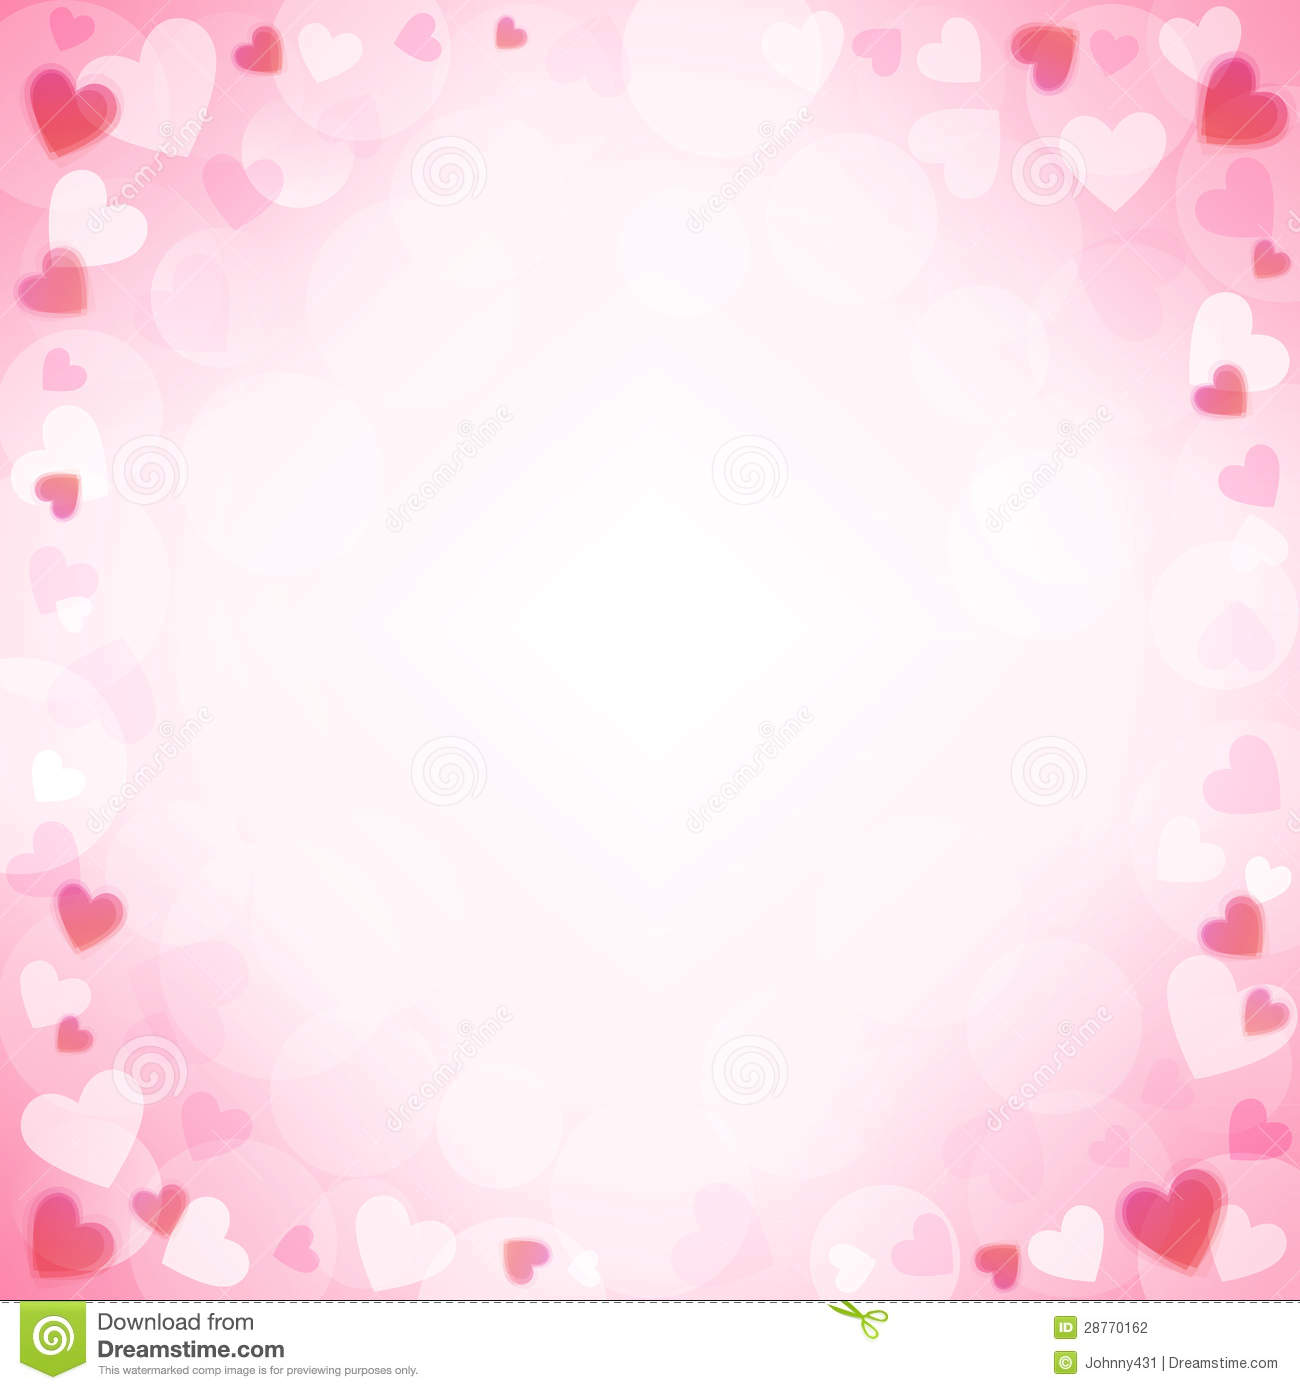 Falling Cherry Blossom Wallpaper Hd Background With Pink Hearts Stock Photography Image